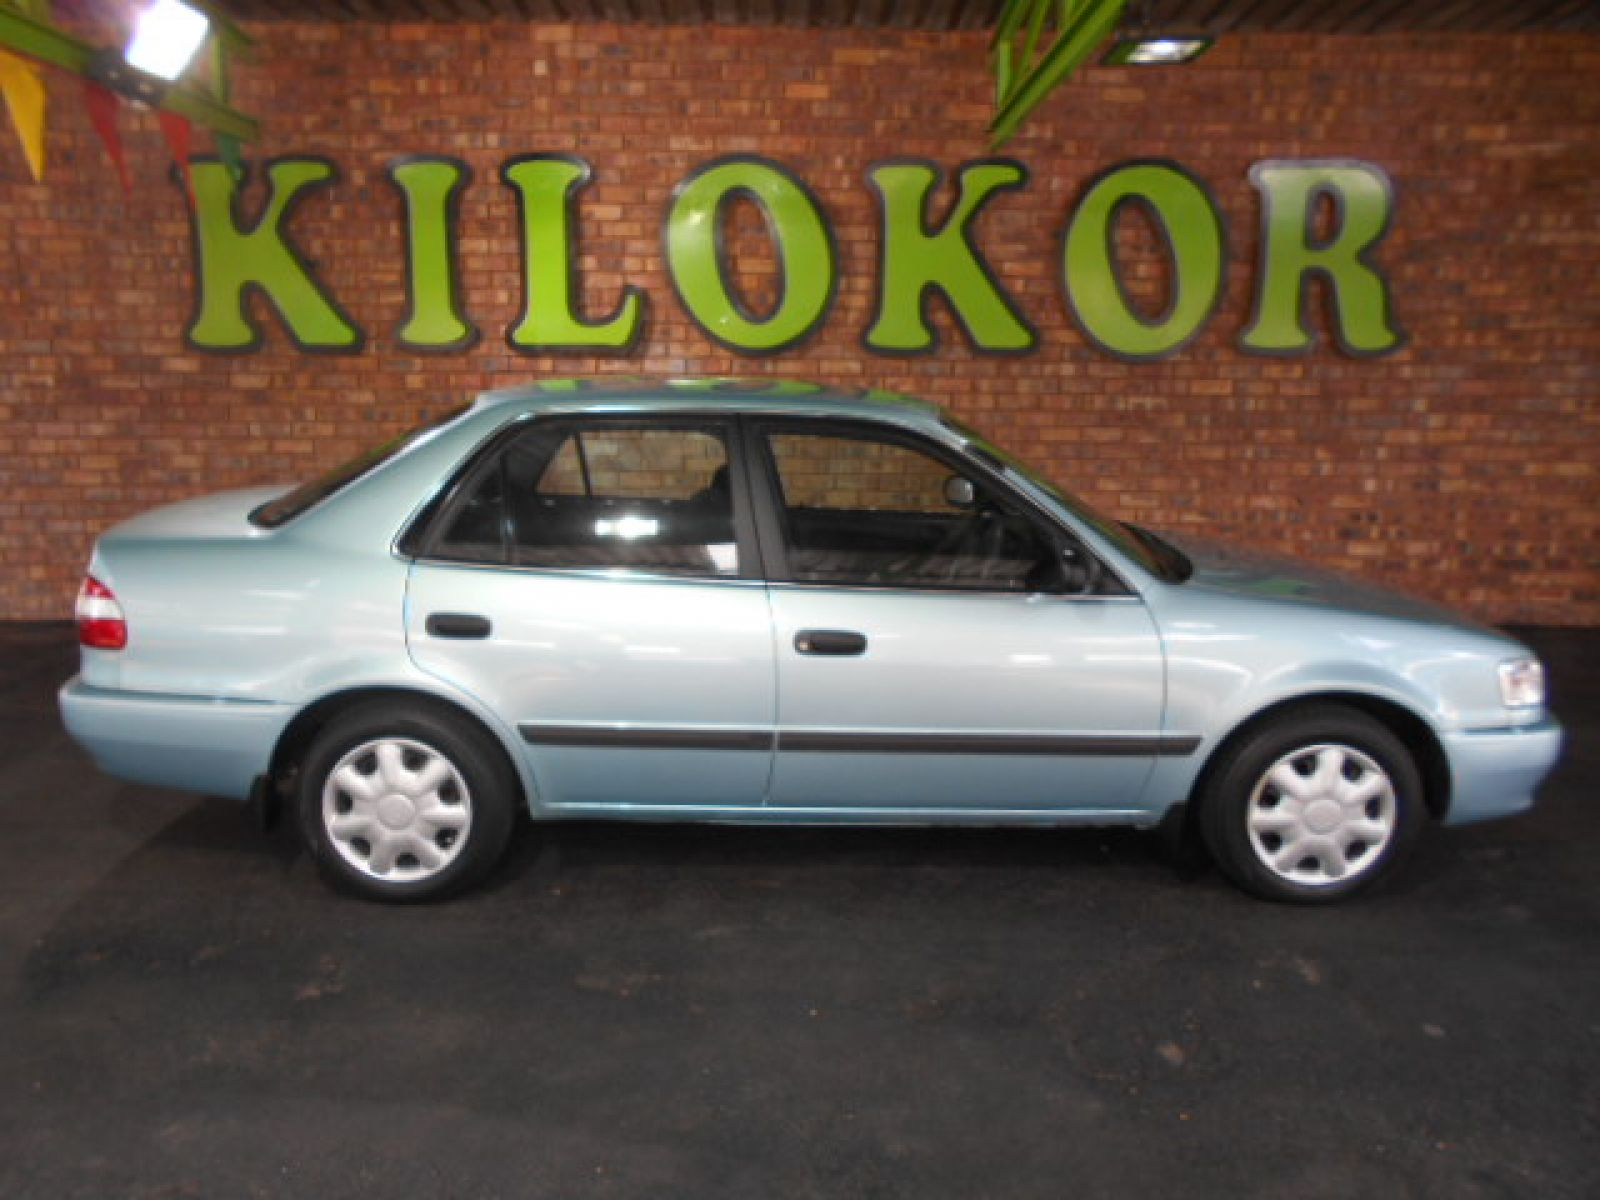 1999 Toyota Corolla R 89 990 For Sale Kilokor Motors